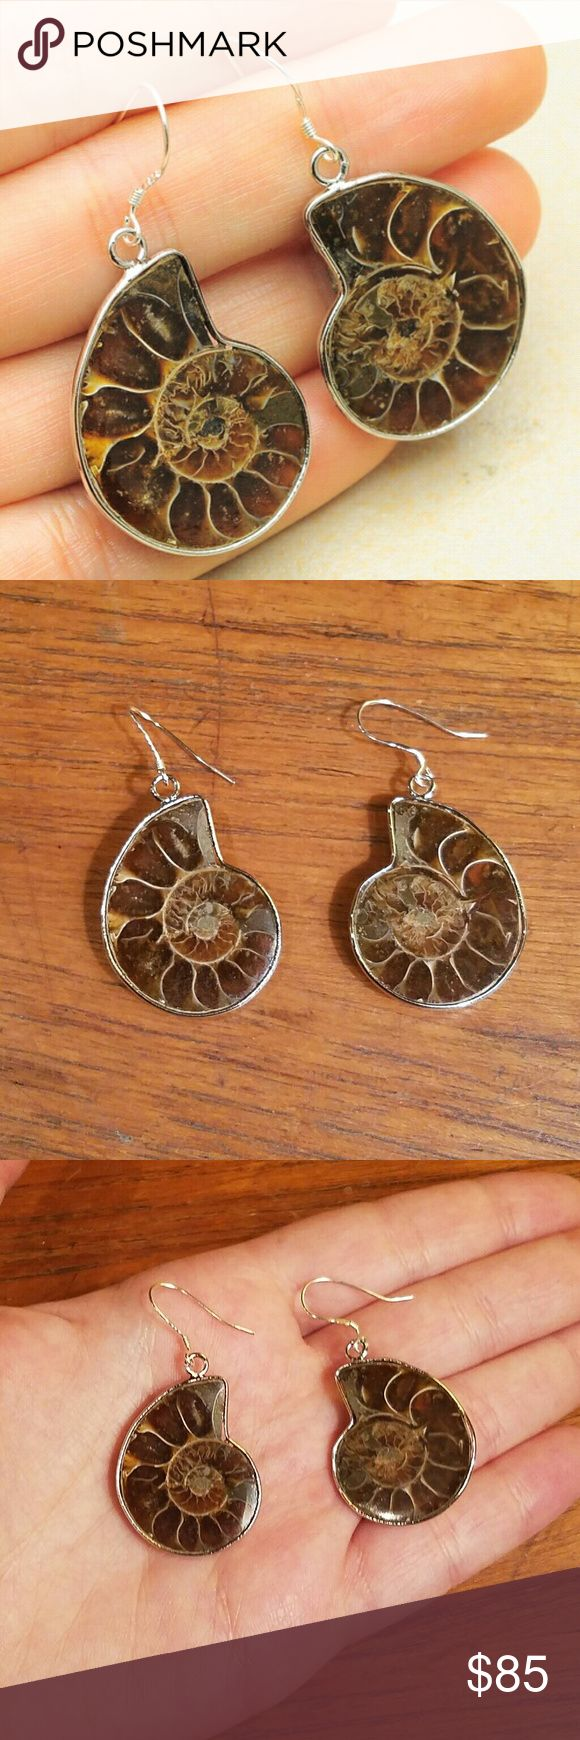 Natural Sterling Ammonite Fossil Earrings So unique and rare. 18k white gold plated settings with sterling silver 925 hooks. Jewelry Earrings